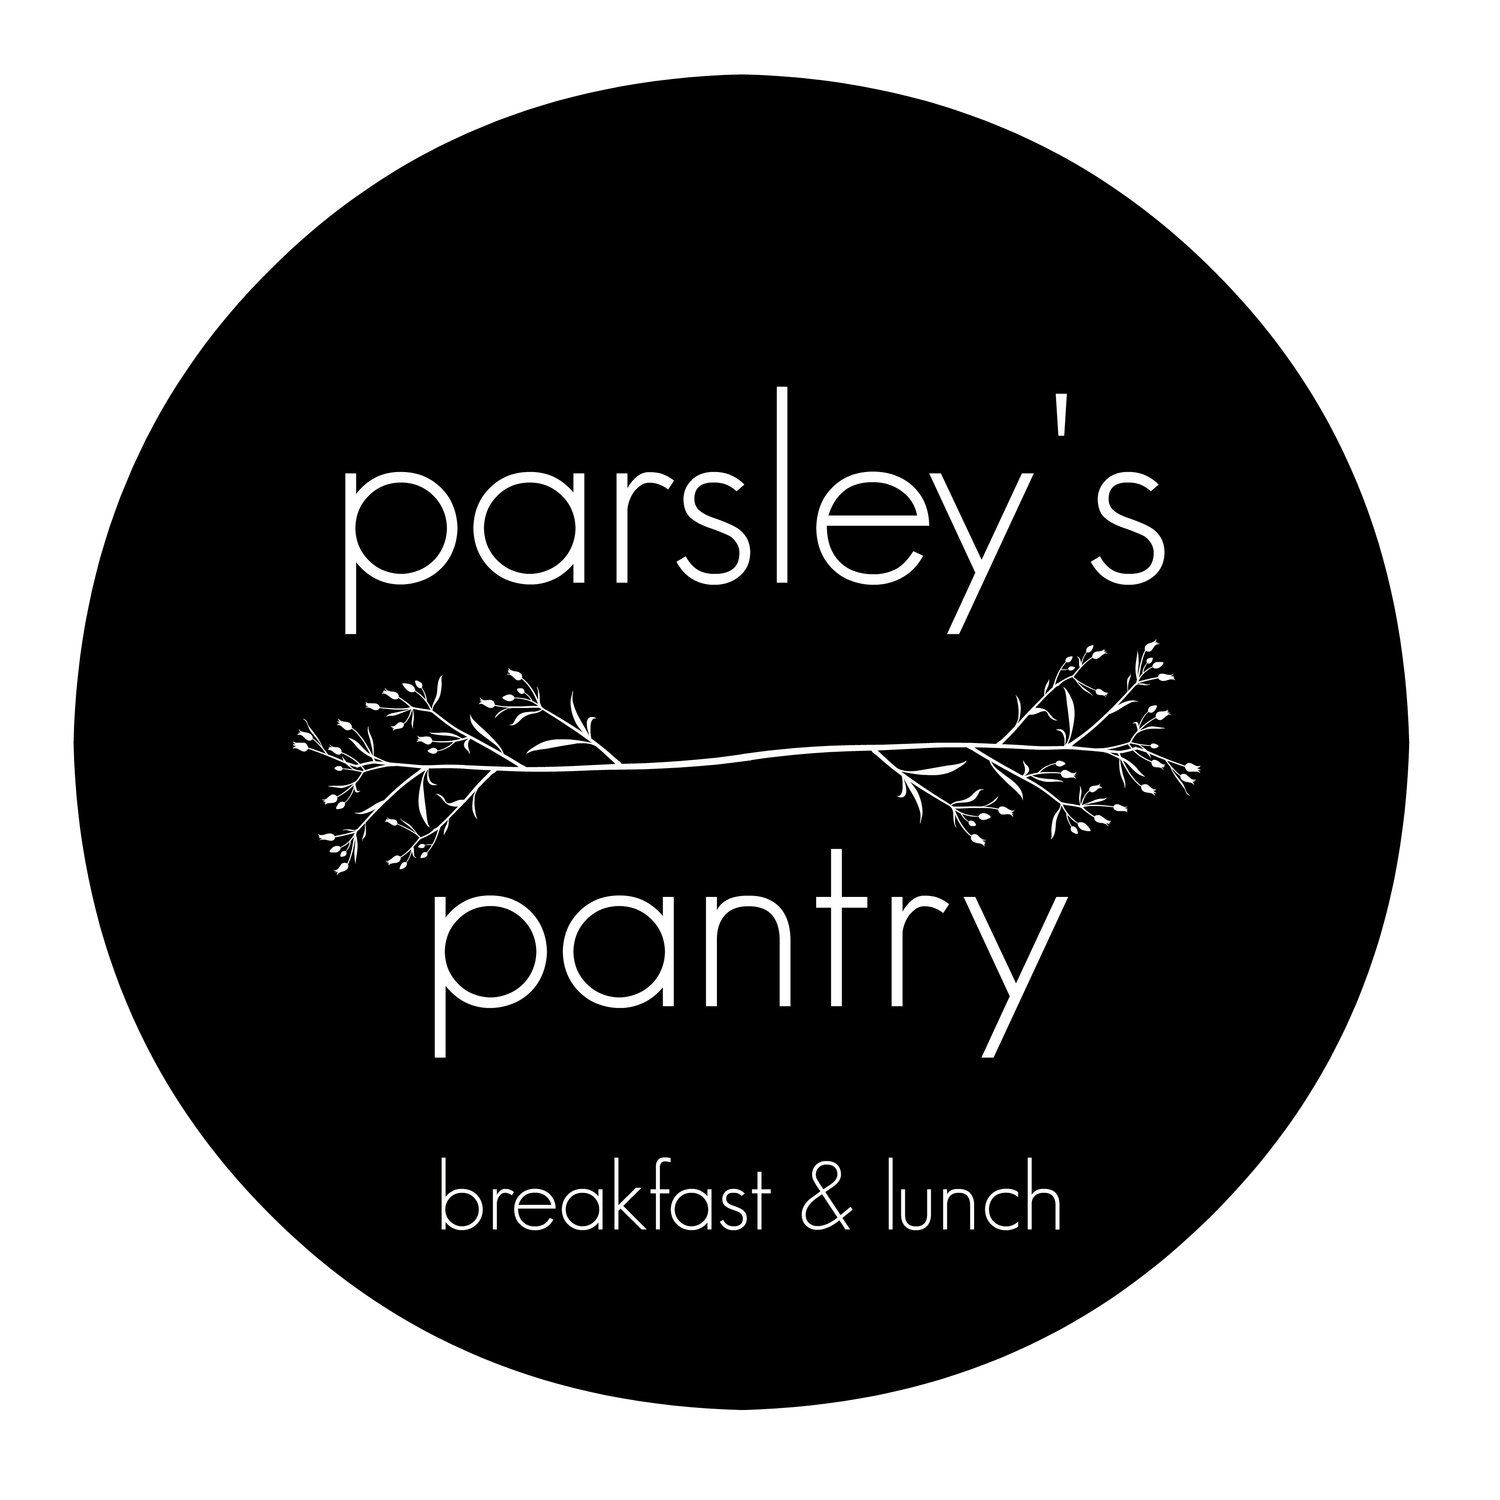 Parsley's Pantry